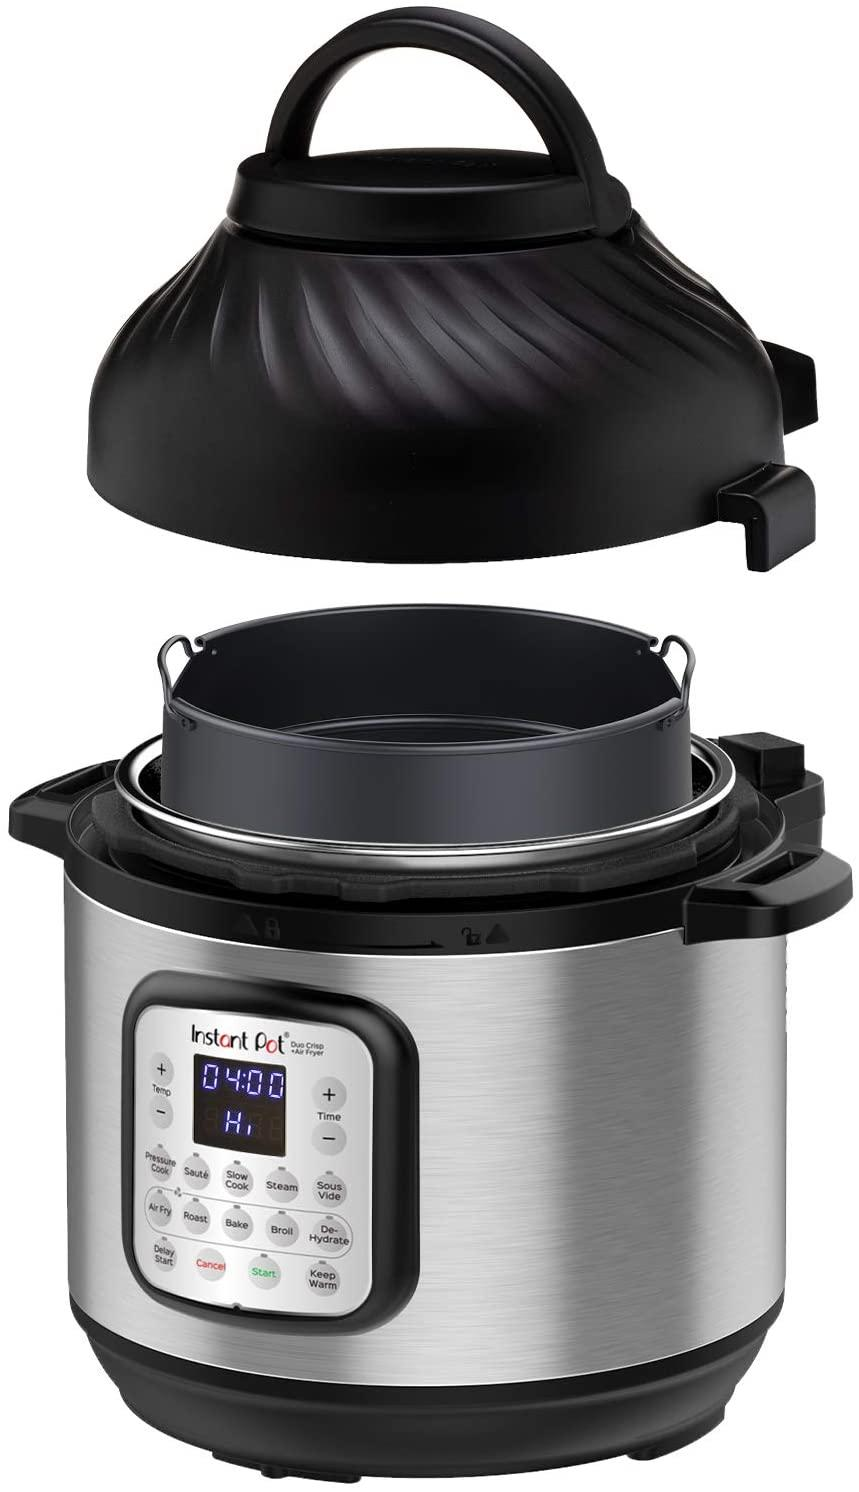 Instant Pot Duo Crisp 11-in-1 Air Fryer, Electric Pressure Cooker, Slow Cooker, Steamer, Saute, Sous Vide, Roast, Bake, Broil, and Warmer|8 Quart|11 One-Touch Programs.